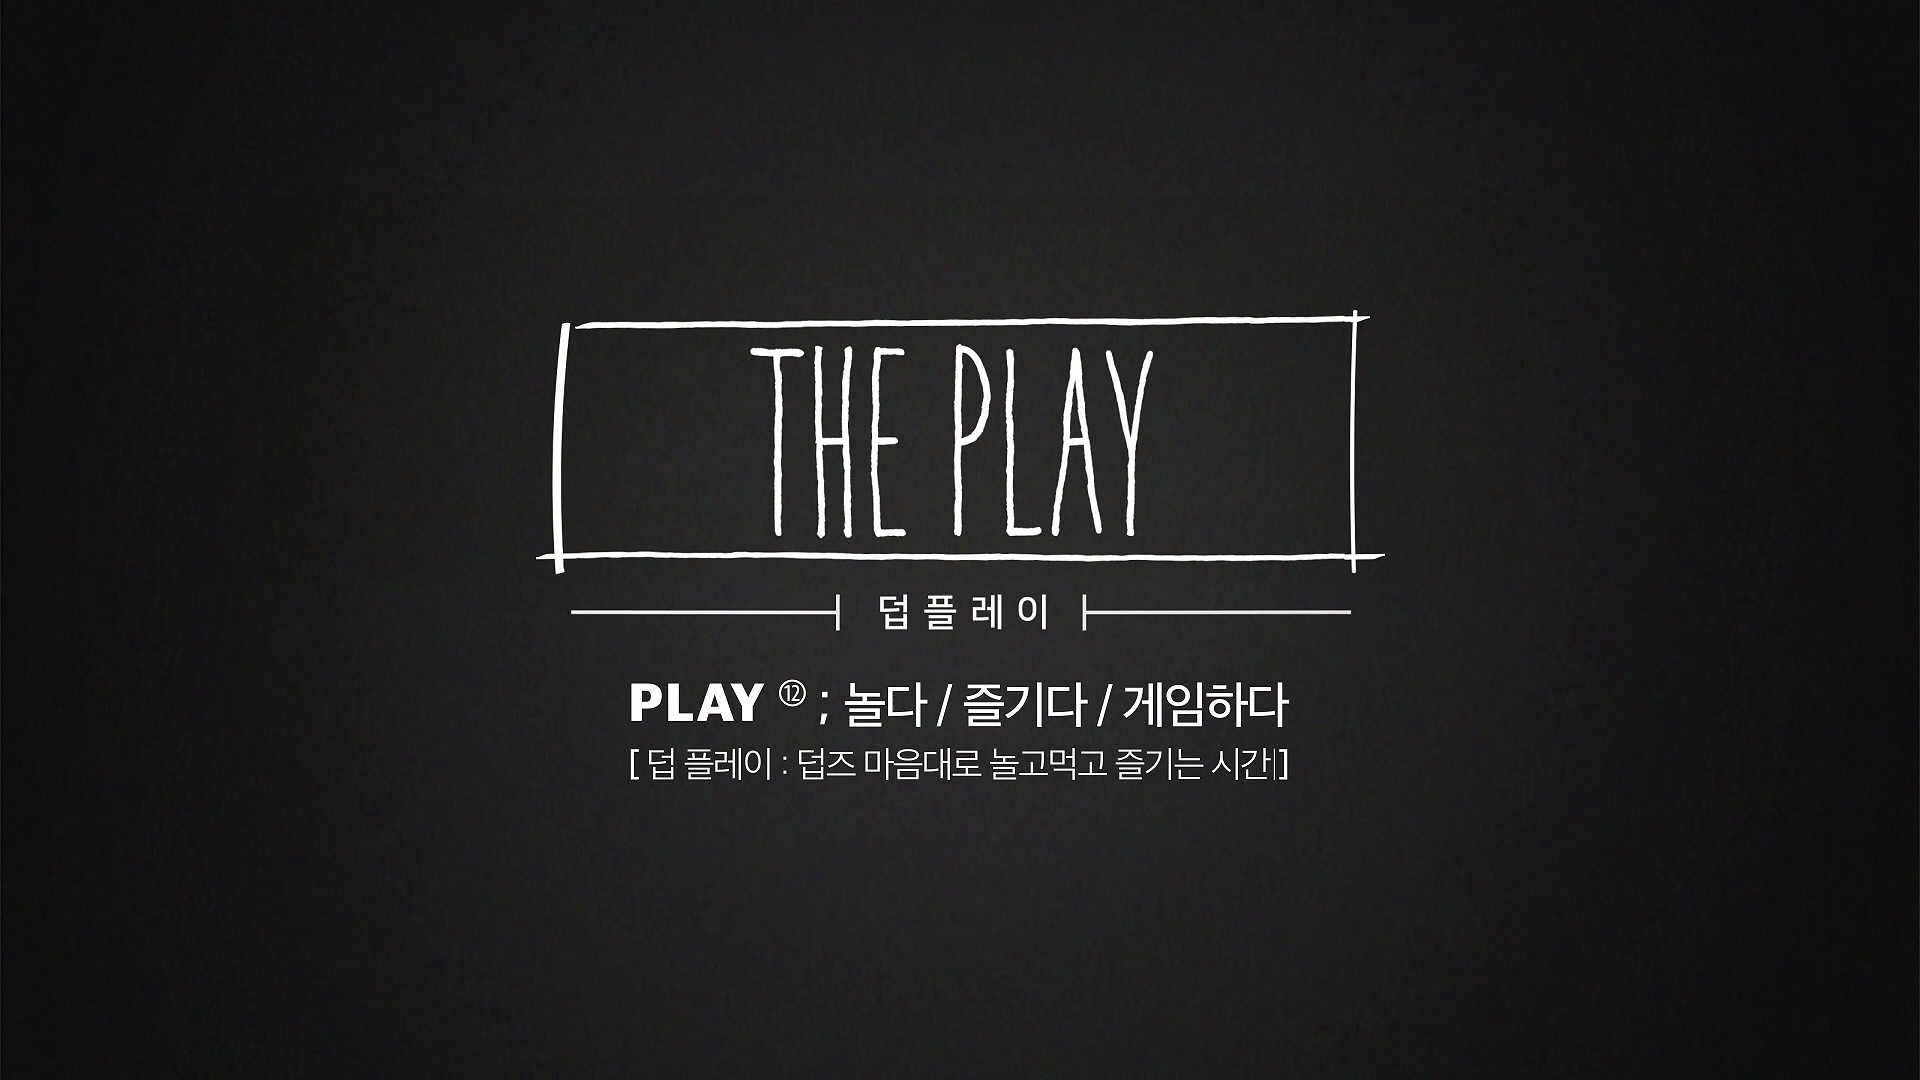 [덥:플레이(THE PLAY)] EP.4 Children's Day SP - 주연&큐&에릭 (JUYEON&Q&ERIC) https://youtu.be/Q2ITex3_59E